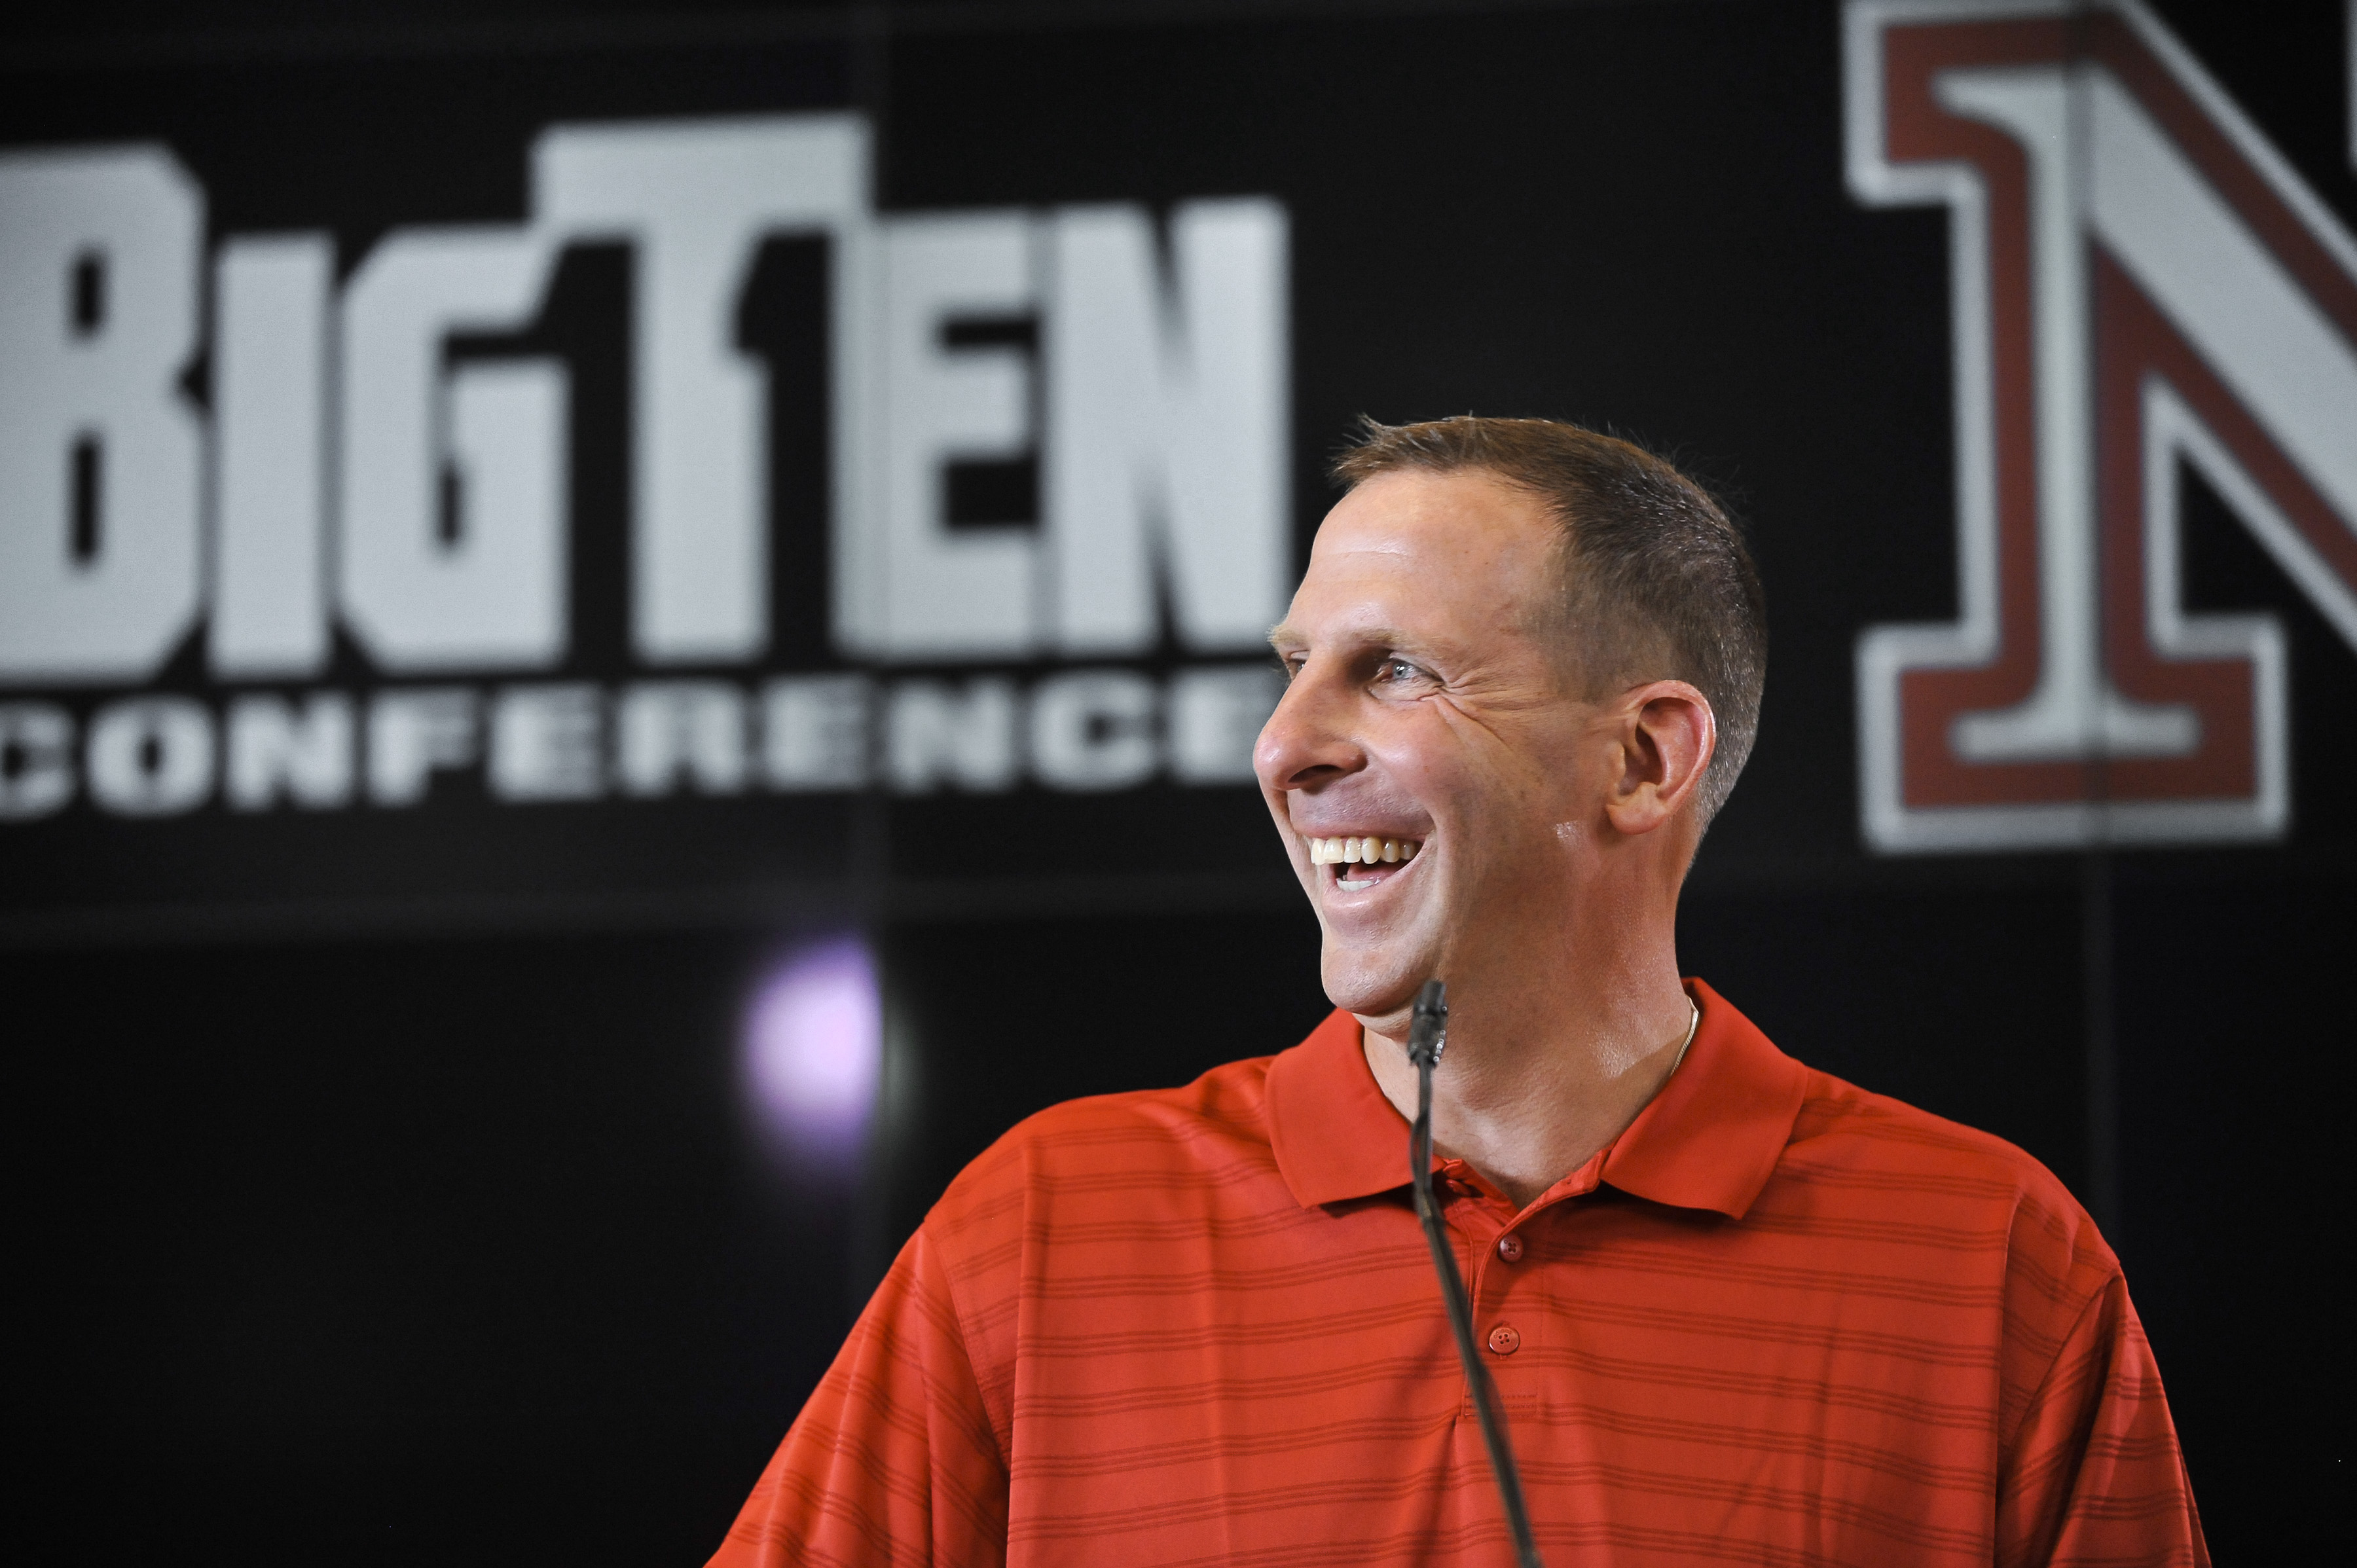 LINCOLN, NE - JUNE 11:  University of Nebraska football coach Bo Pelini jokes with members of the media at a press conference announcing Nebraska accepting an invitation to join the Big Ten Conference June 11, 2010  in Lincoln, Nebraska.  The university w